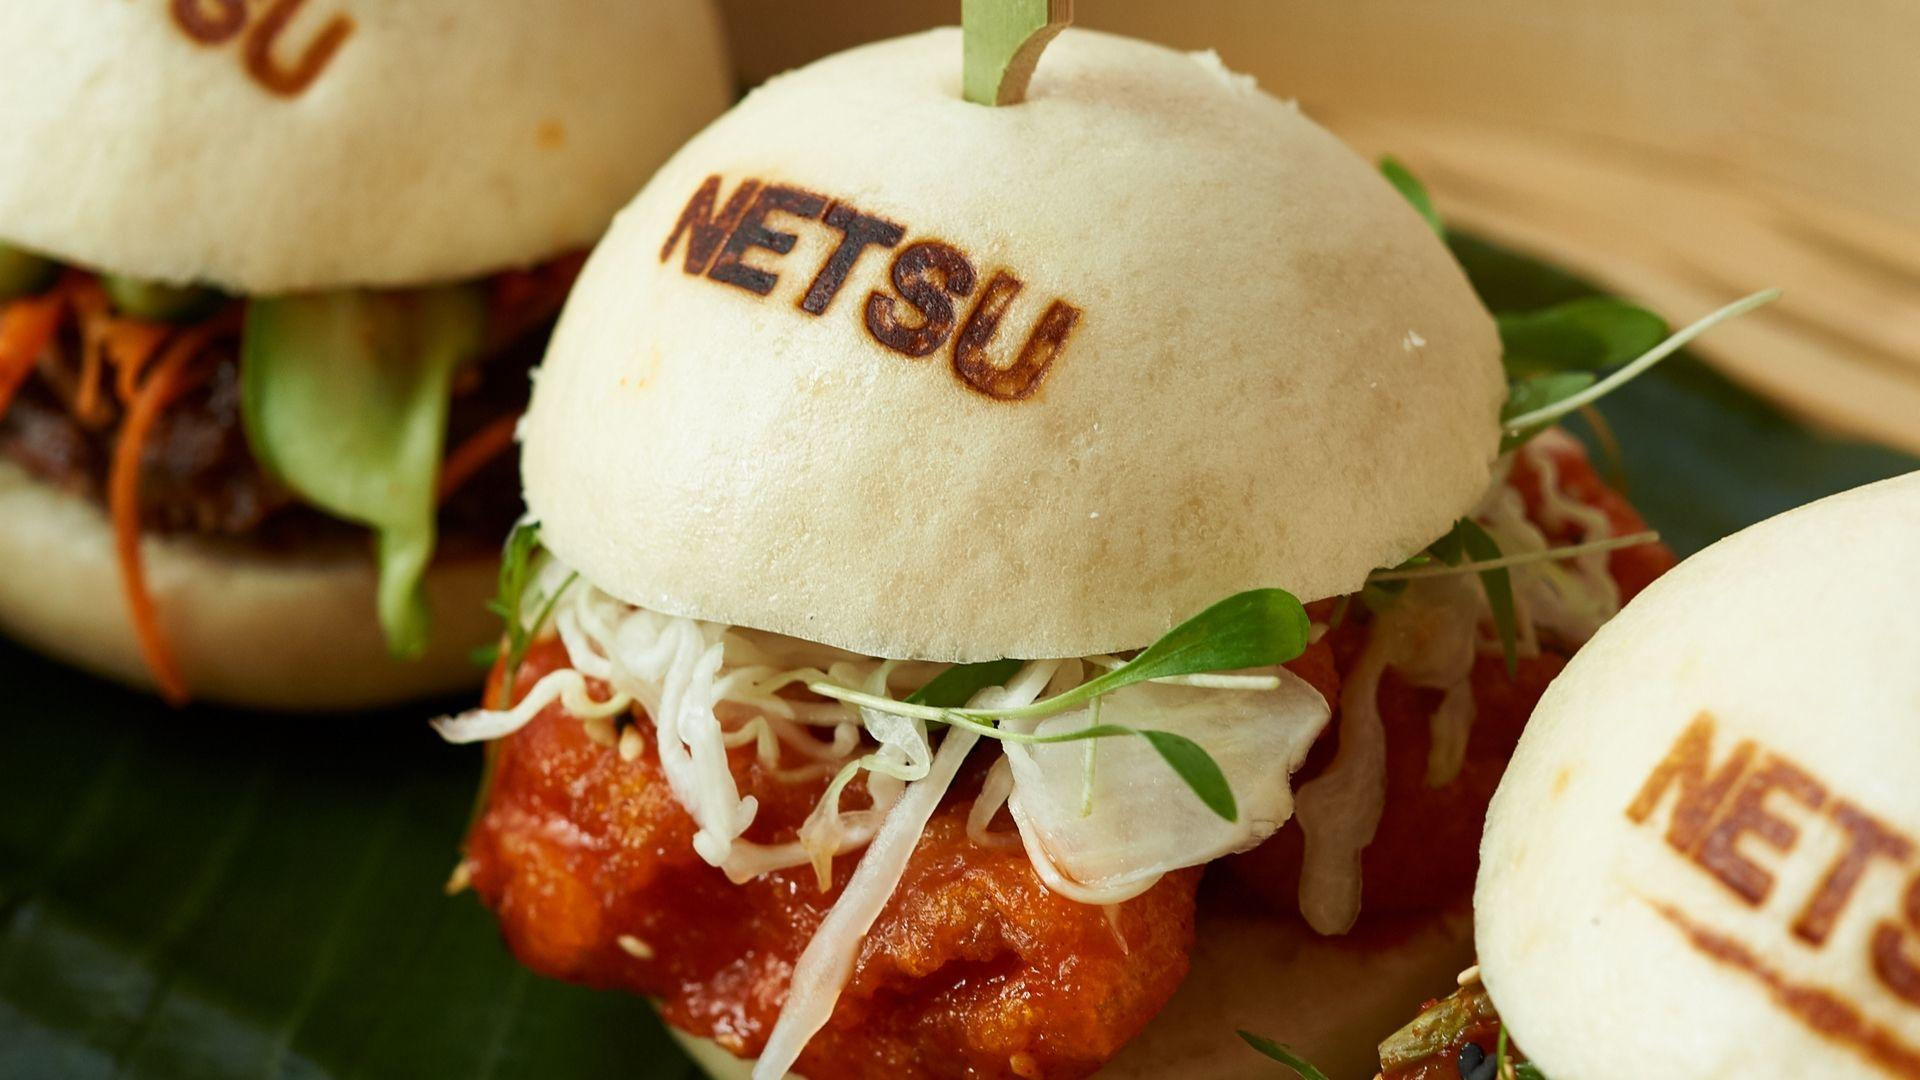 #ChicEats: The Weekend Lunch At Netsu